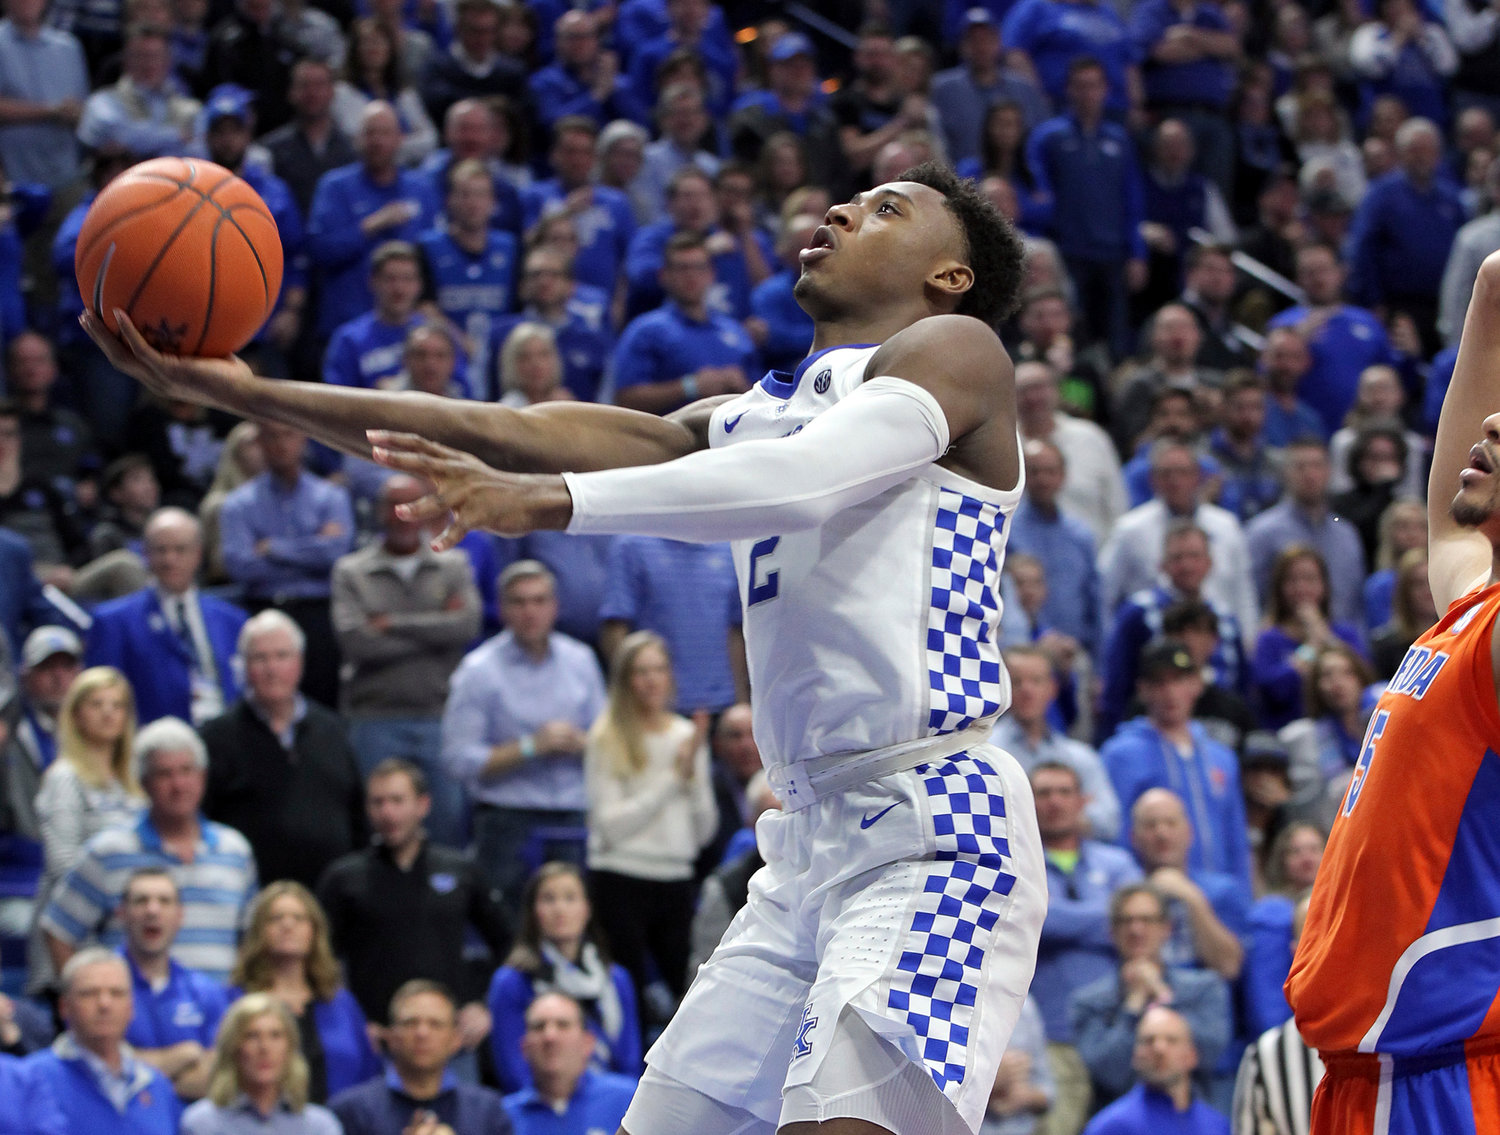 Kentucky's Ashton Hagans, a Cartersville native, shoots near Florida's Isaiah Stokes, right, during Saturday's game in Lexington, Kentucky.